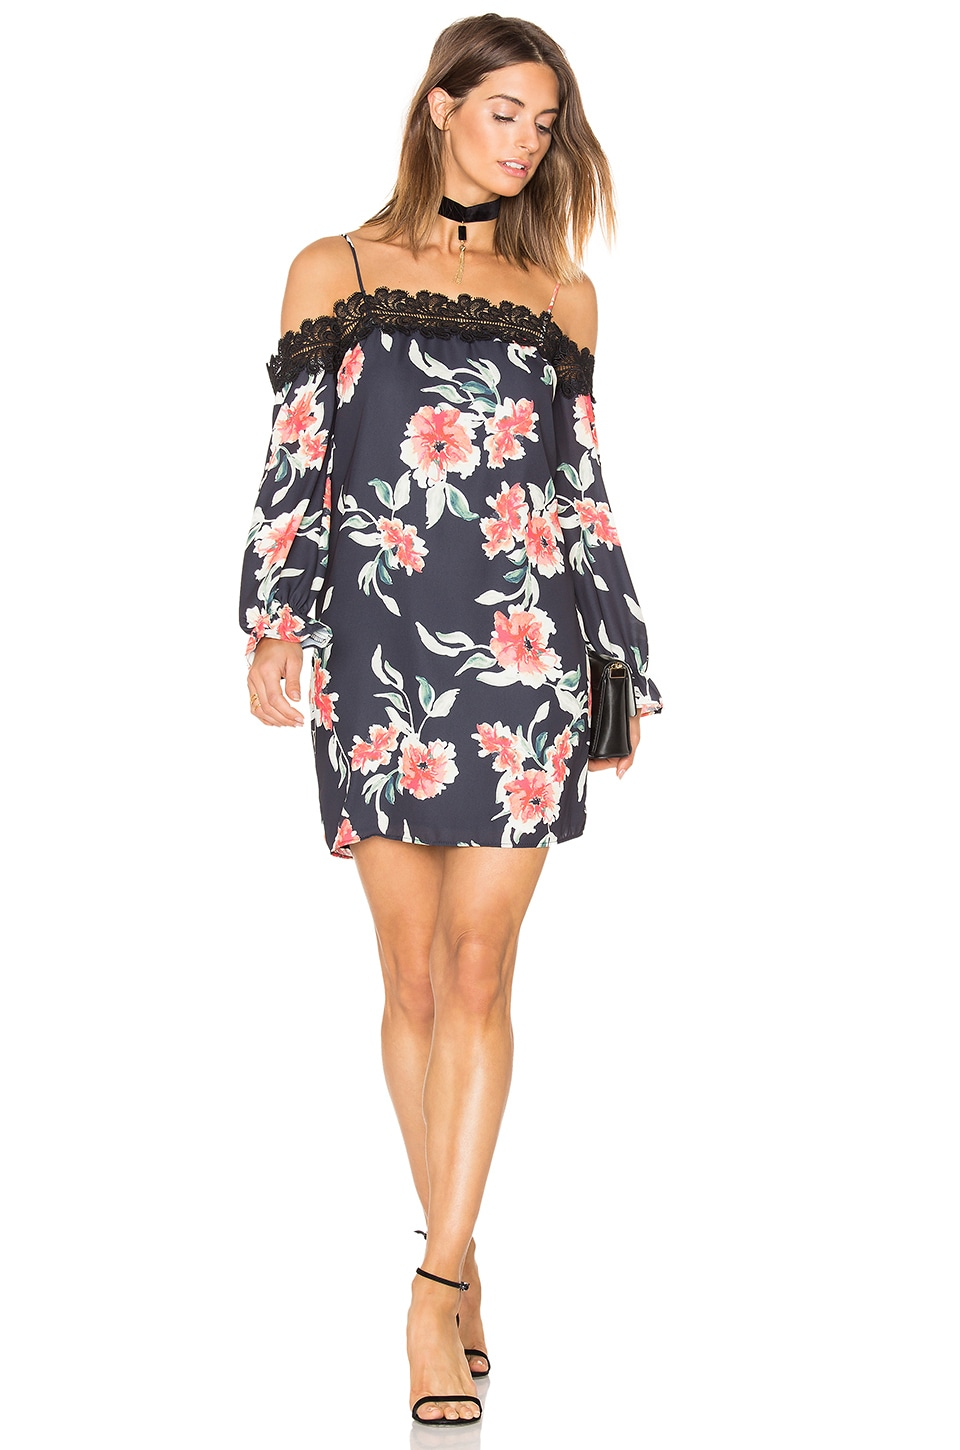 Eight Sixty Whispering Floral Dress in Black & Coral